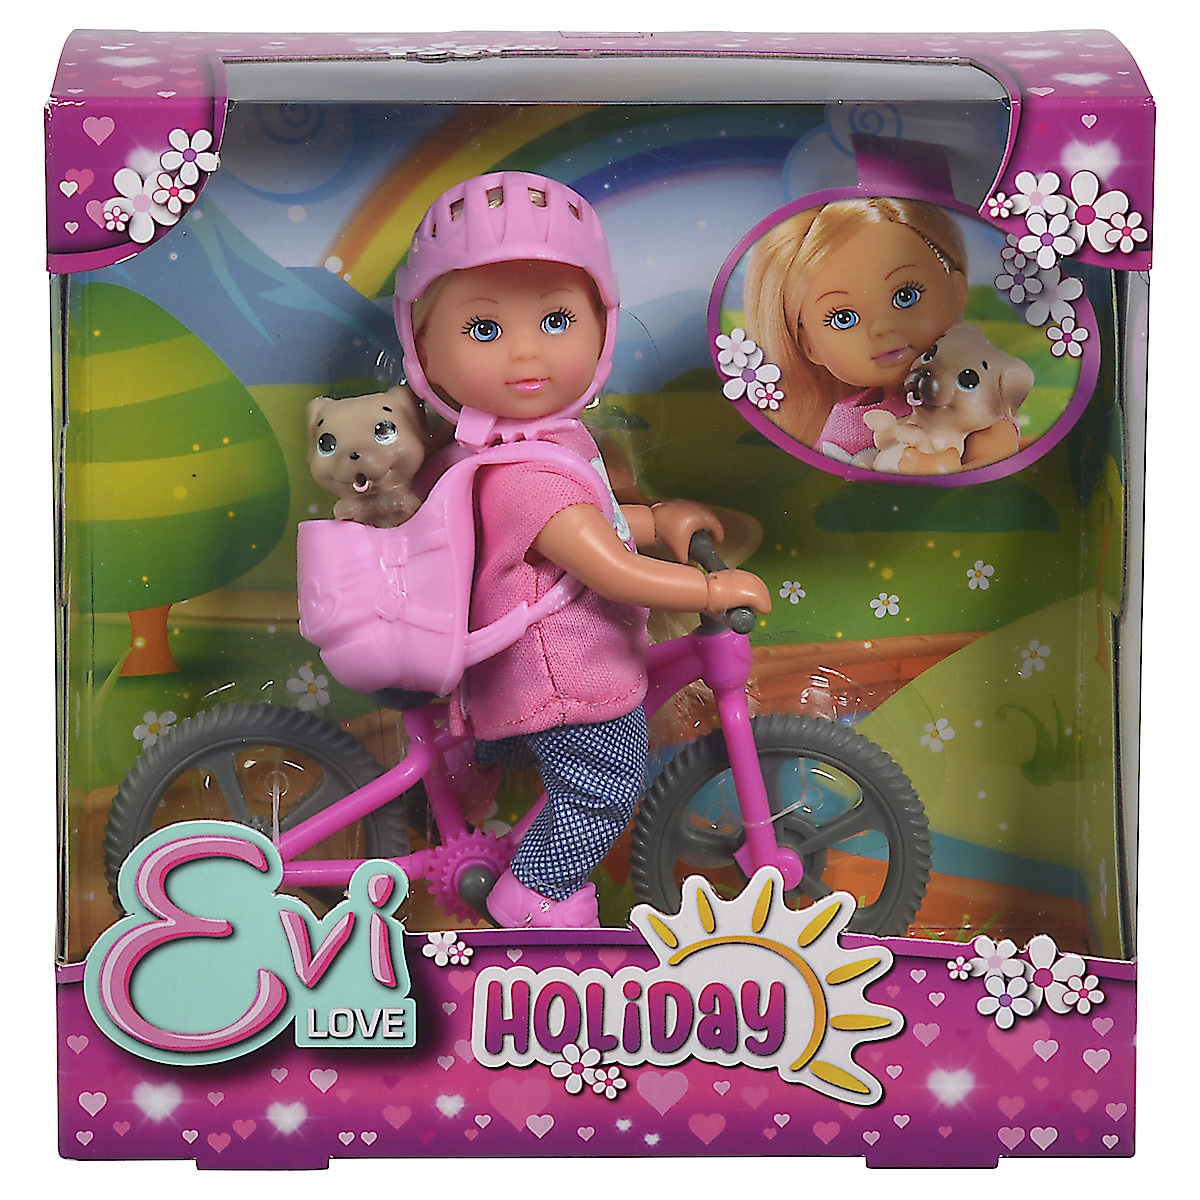 Evi LOVE Holiday Bike